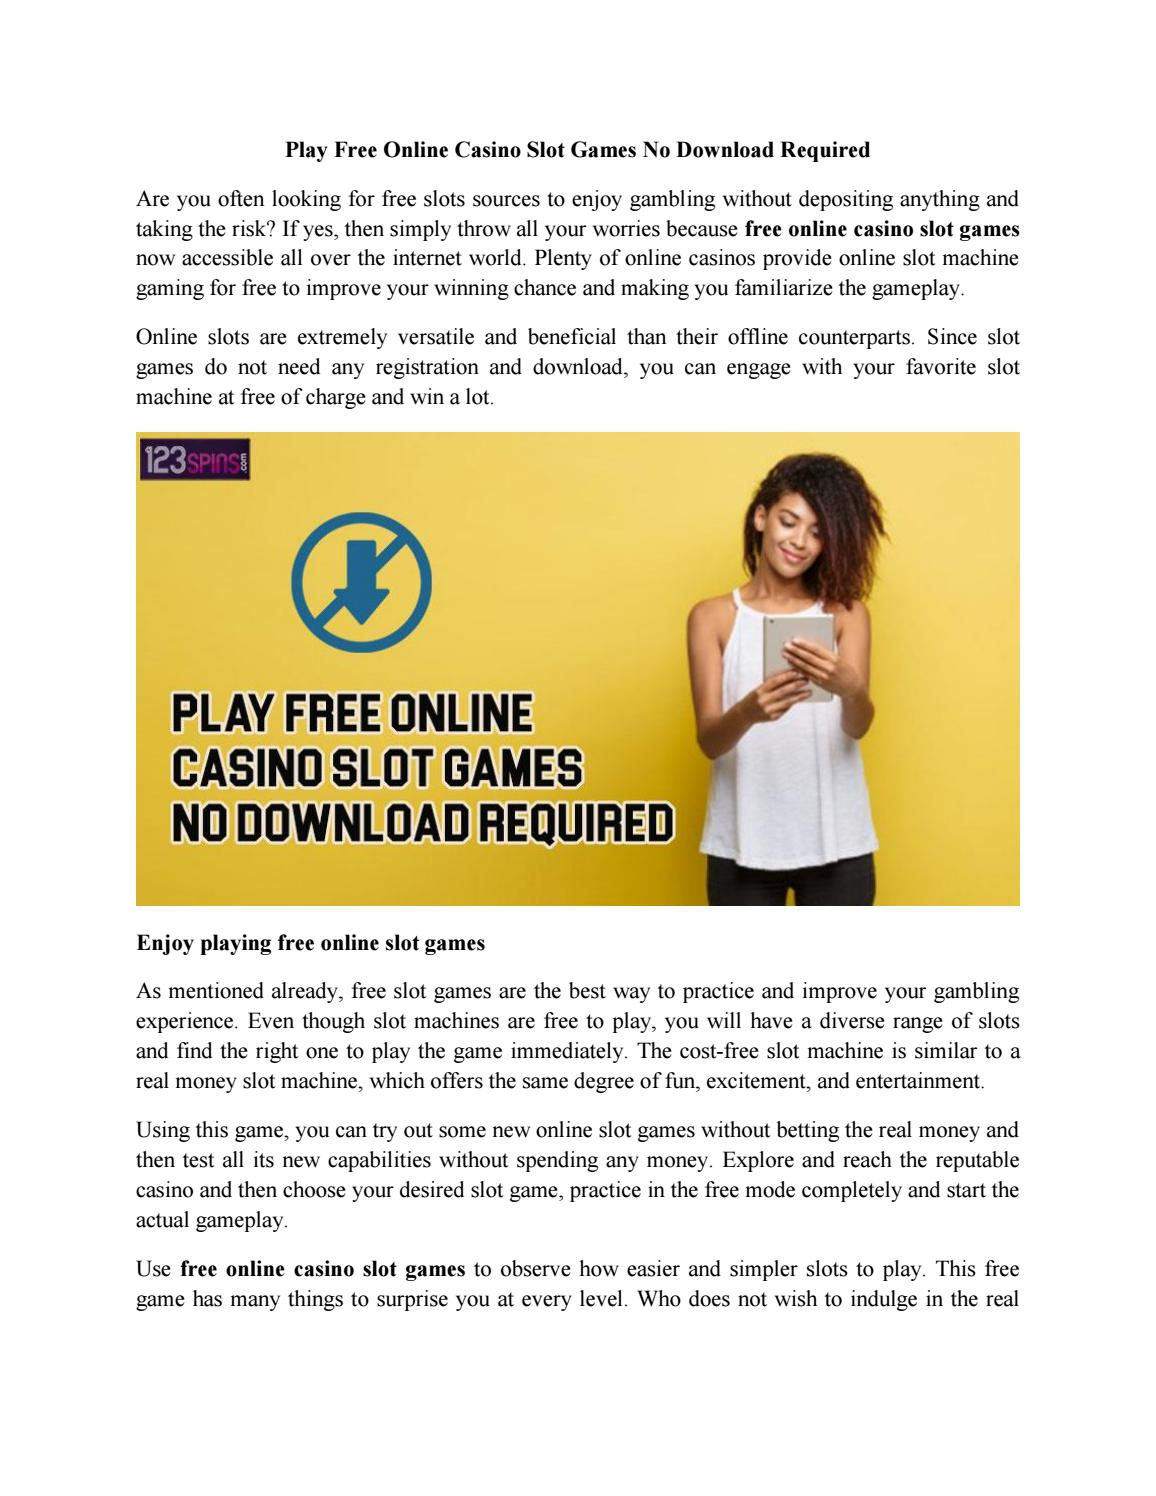 Play Free Online Casino Slot Games No Download Required By